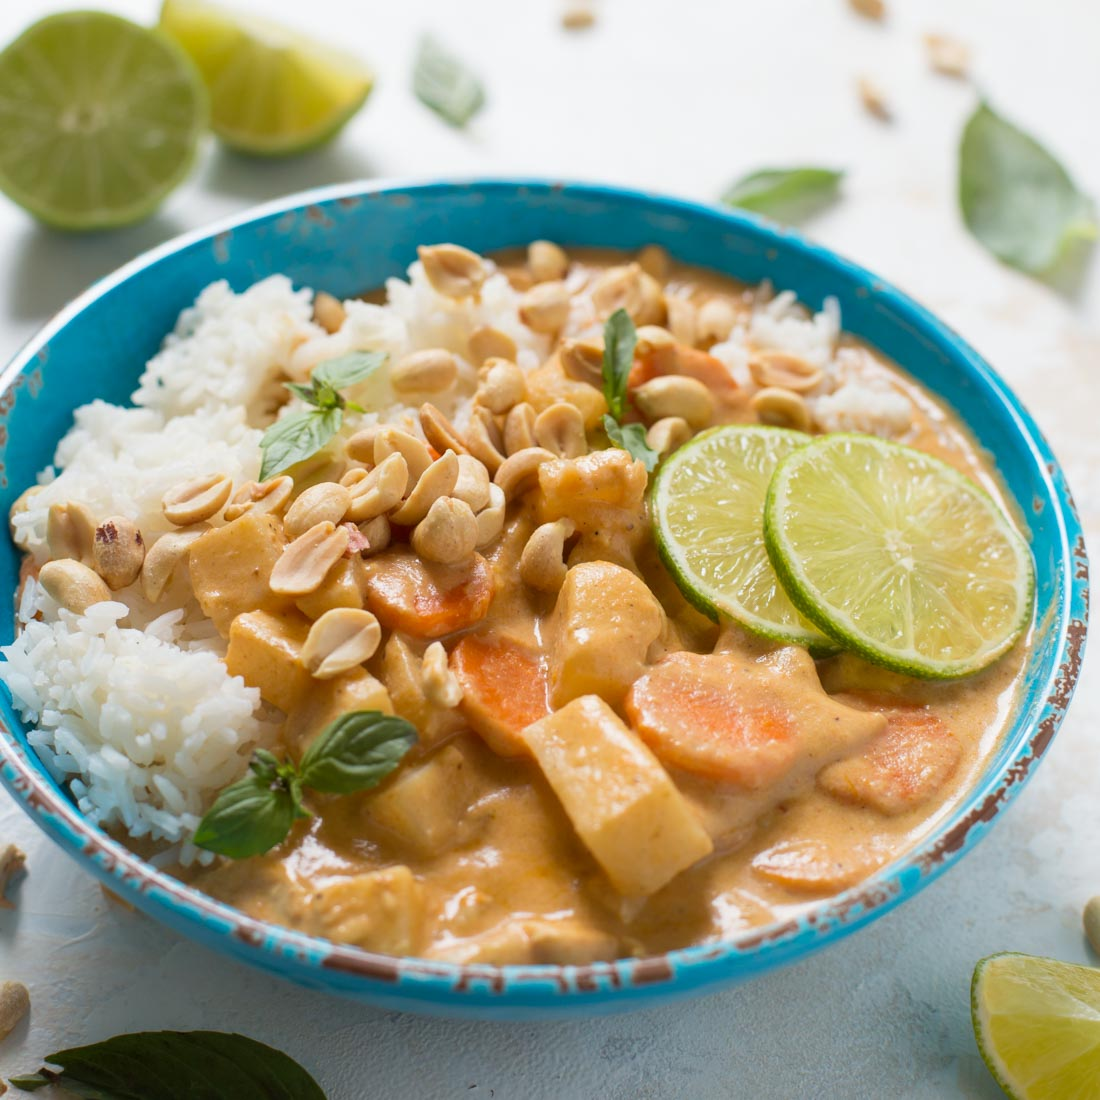 Homemade massaman curry in blue bowl